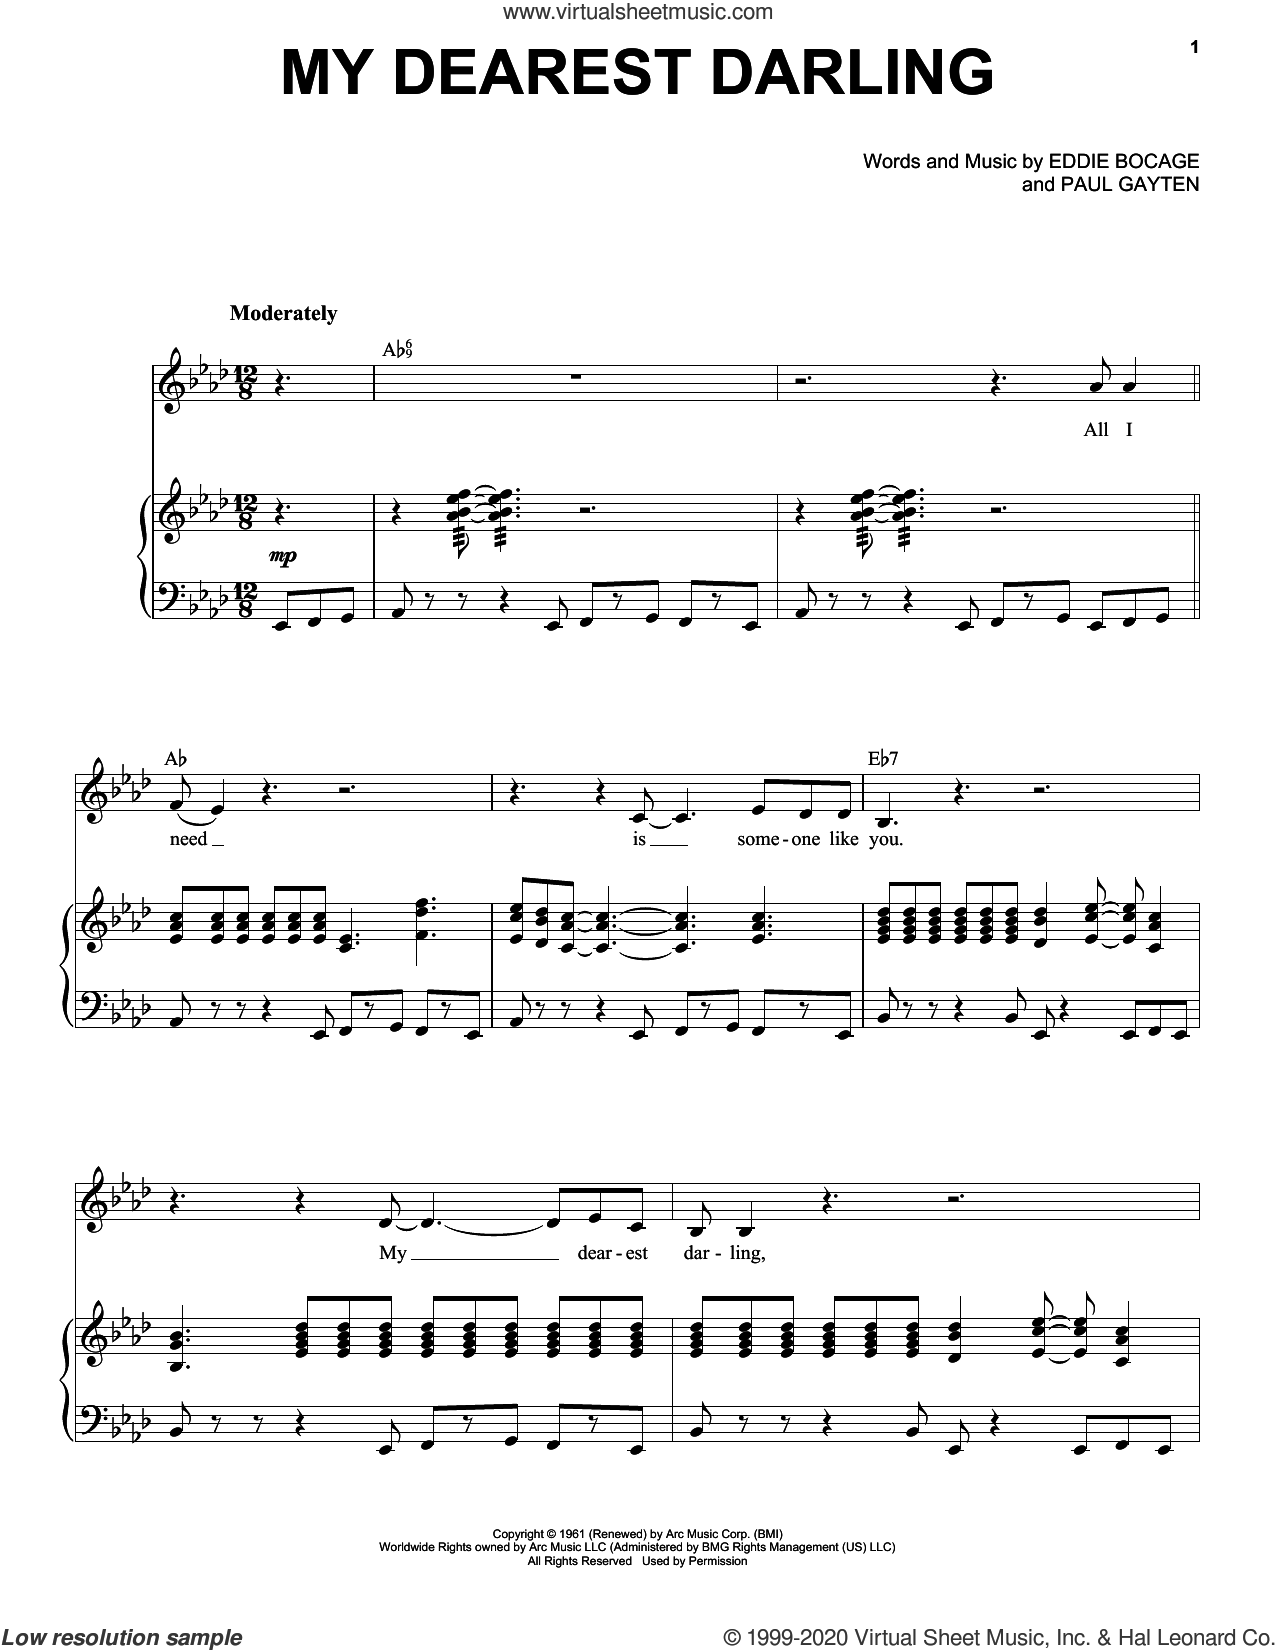 My Dearest Darling sheet music for voice and piano by Etta James, Eddie Bocage and Paul Gayten, intermediate skill level